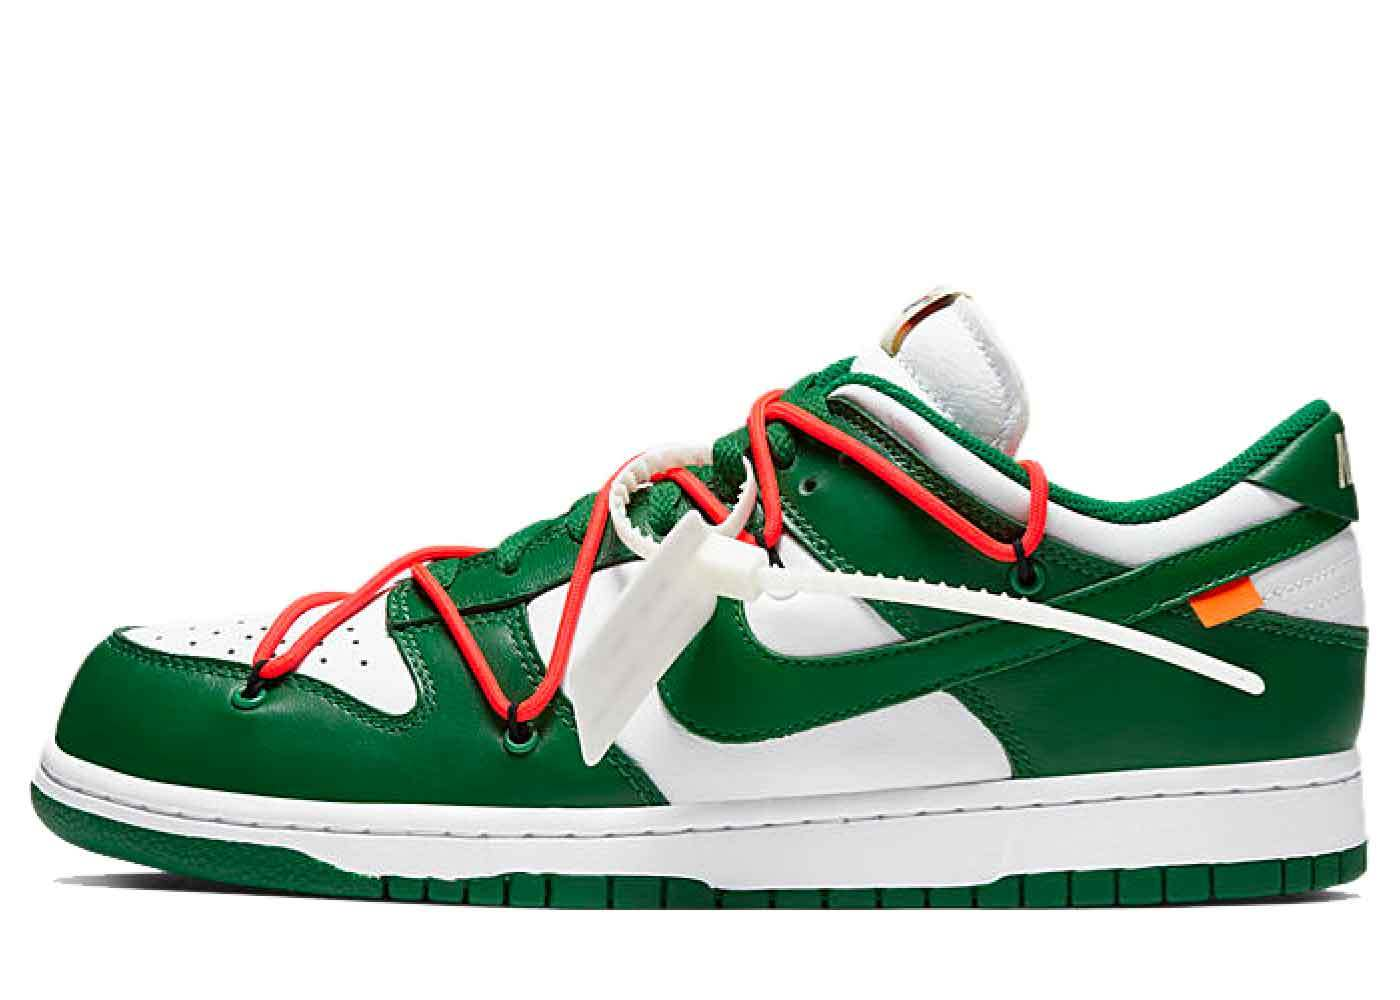 Nike Dunk Low Off-White Pine Greenの写真